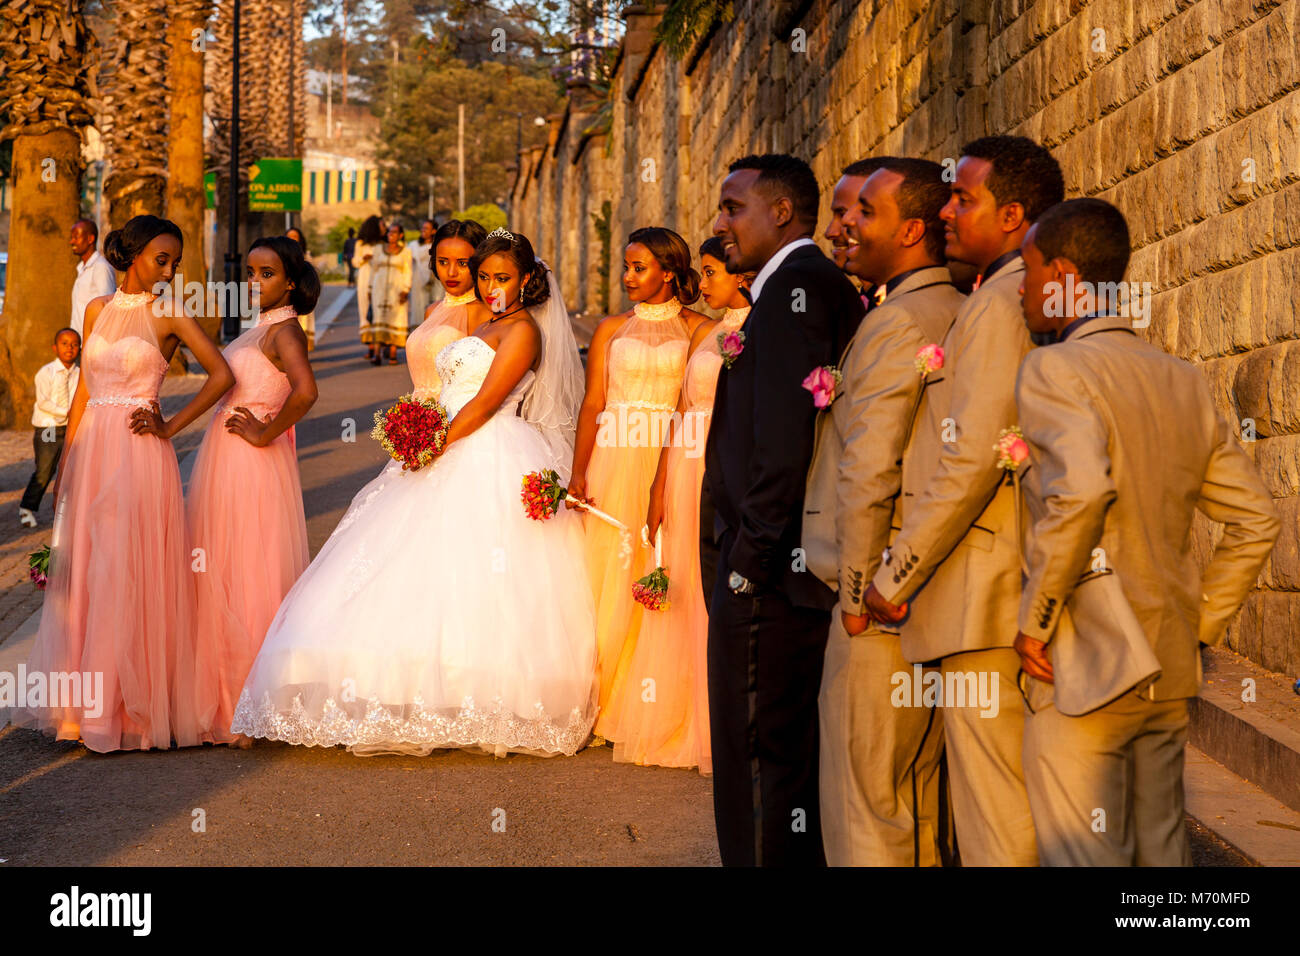 7eb5e1474bf African Wedding Dress Stock Photos   African Wedding Dress Stock ...